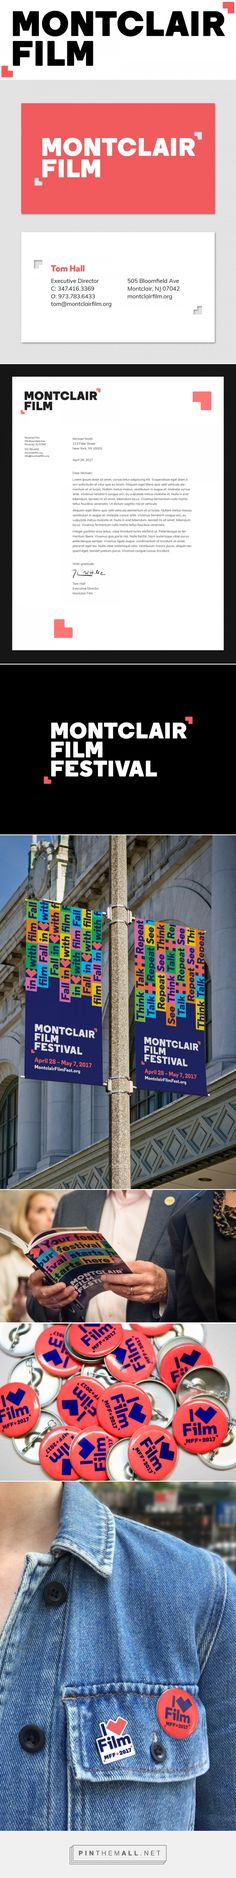 Brand New: New Logo and Identity for Montclair Film by Hieronymus. - a grouped images picture - Pin Them All Letterhead Design, Resume Design, Brand Identity Design, Corporate Design, Branding Design, Corporate Identity, Graphic Design Books, Graphic Design Typography, Book Cover Design